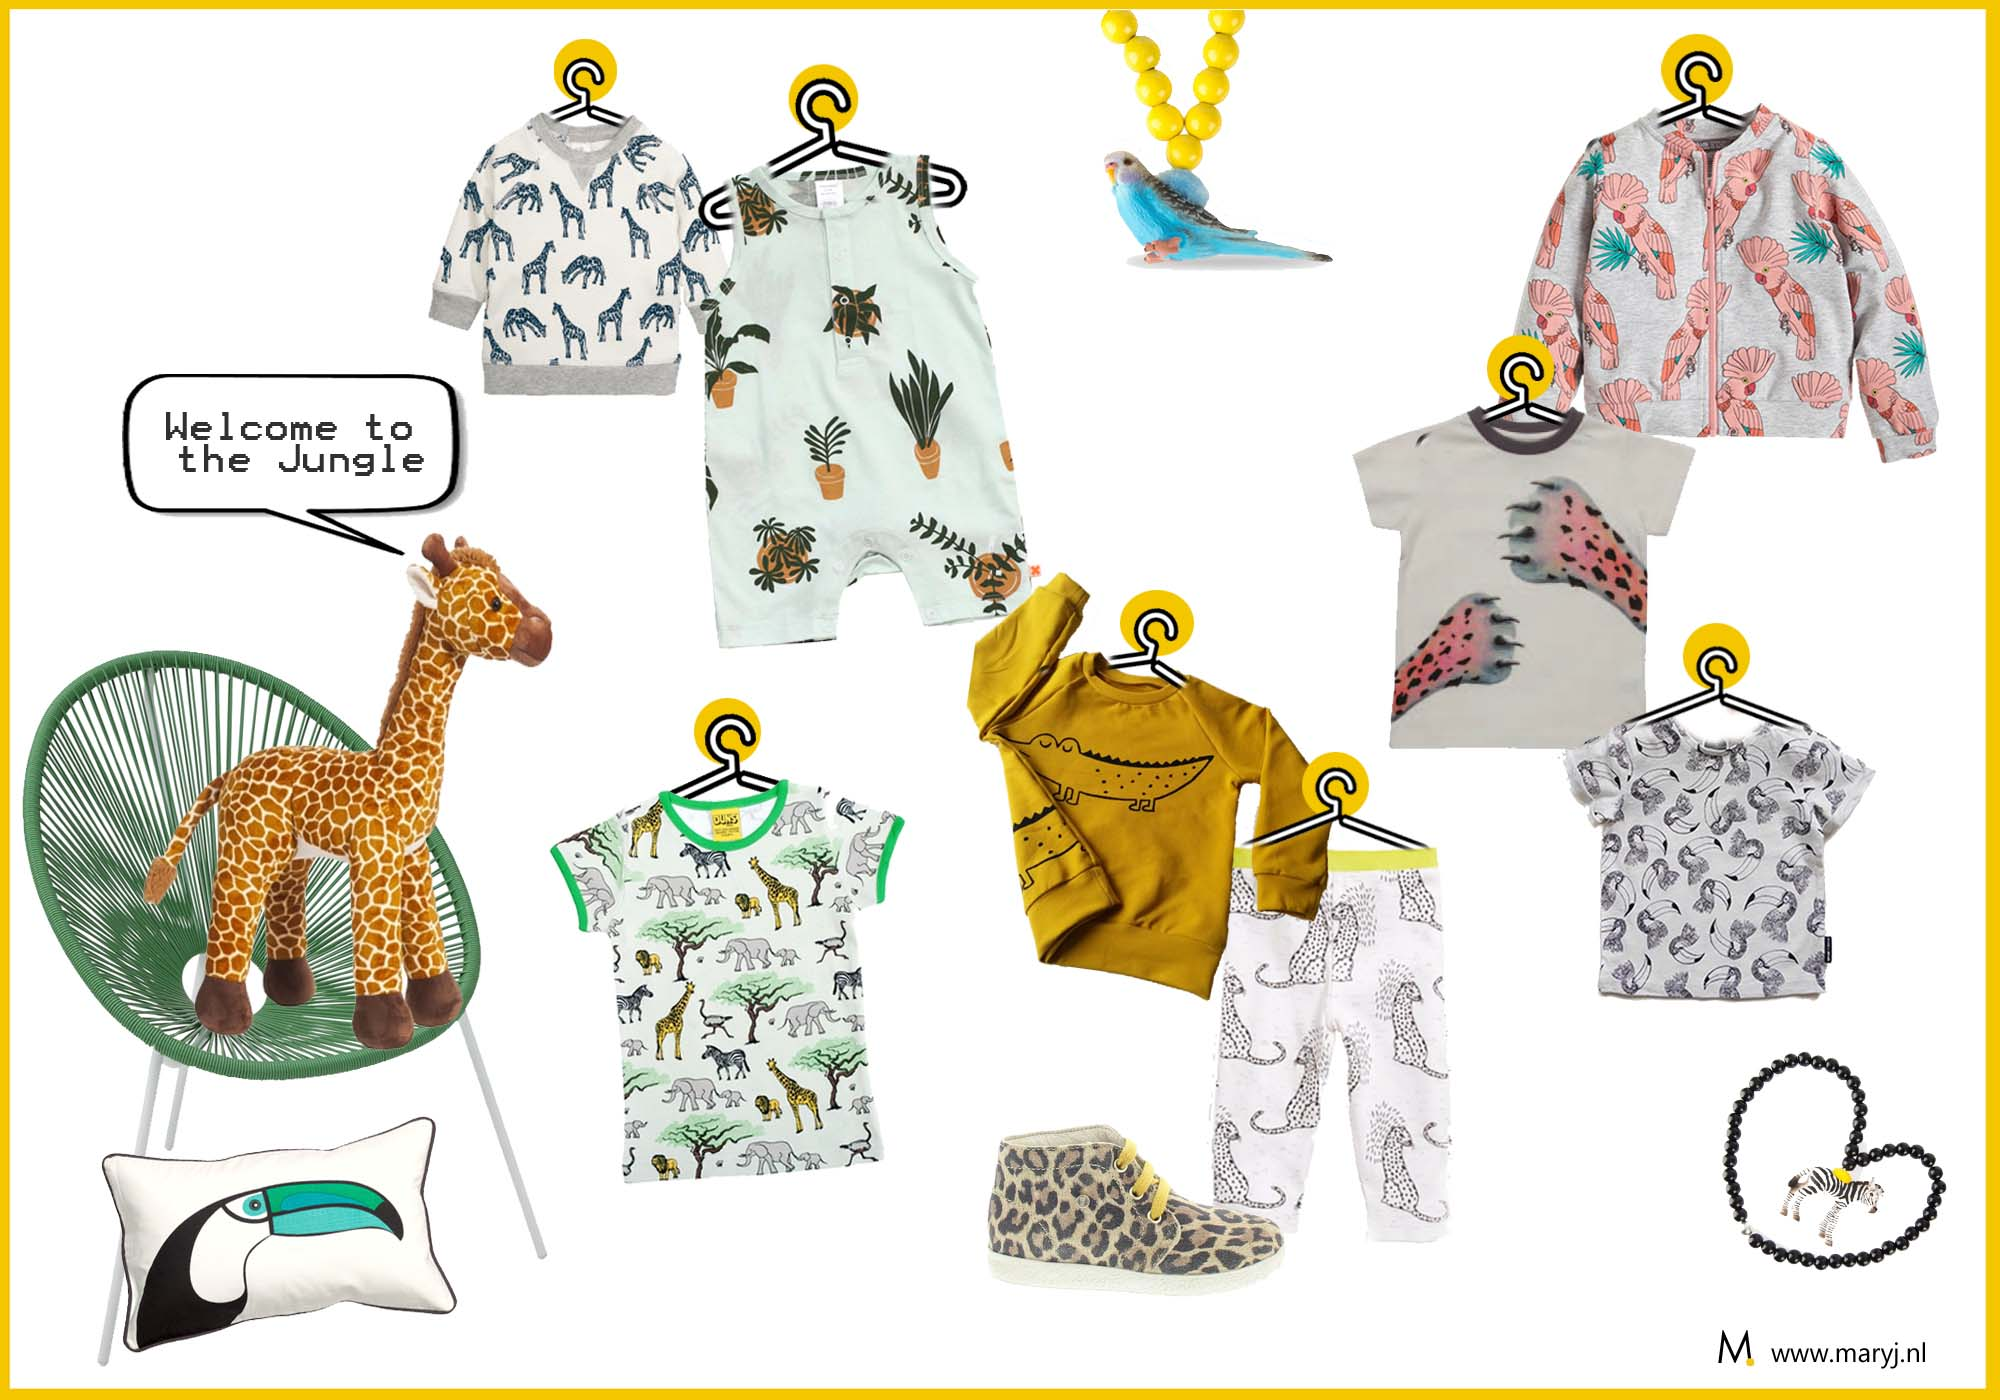 Kinderkleding inspiratie: Welcome to the jungle